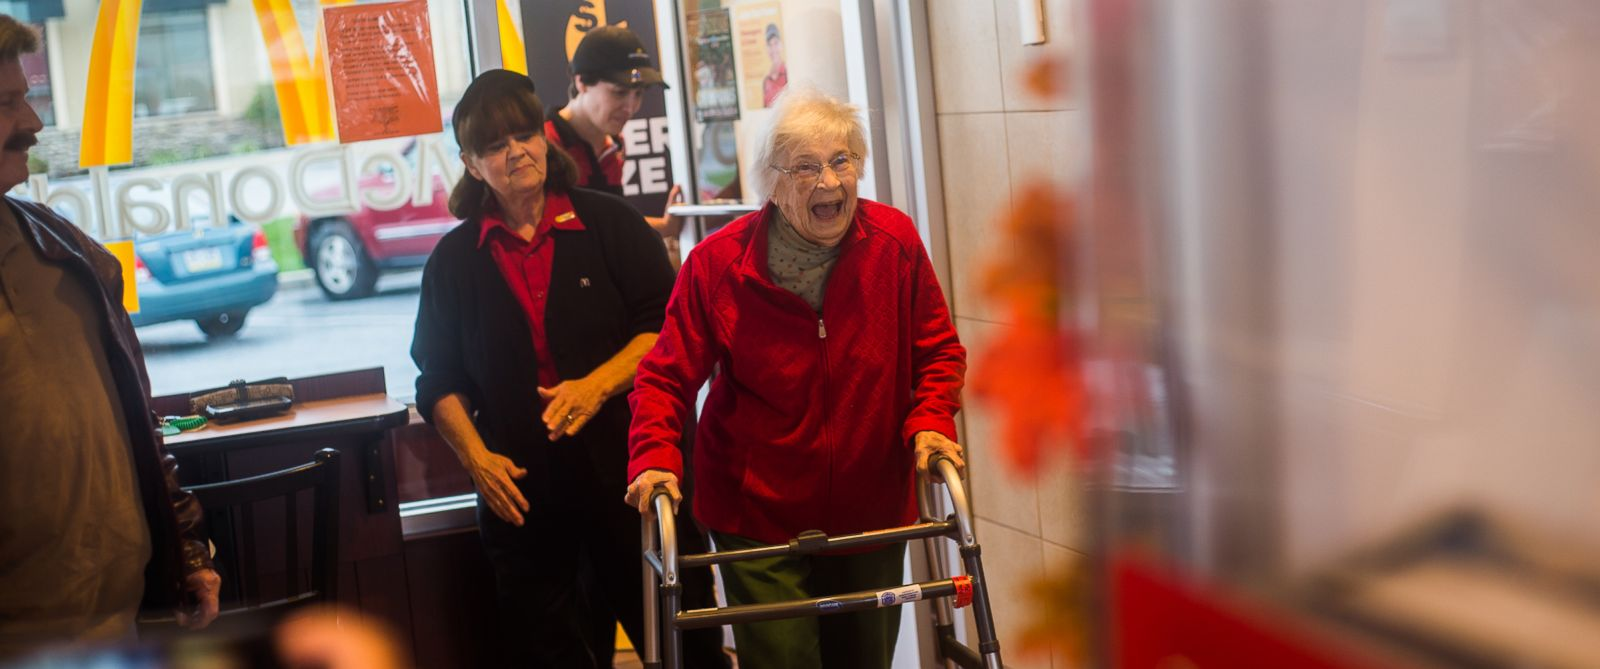 mcdonald s just gave their favourite year old customer a featured image via